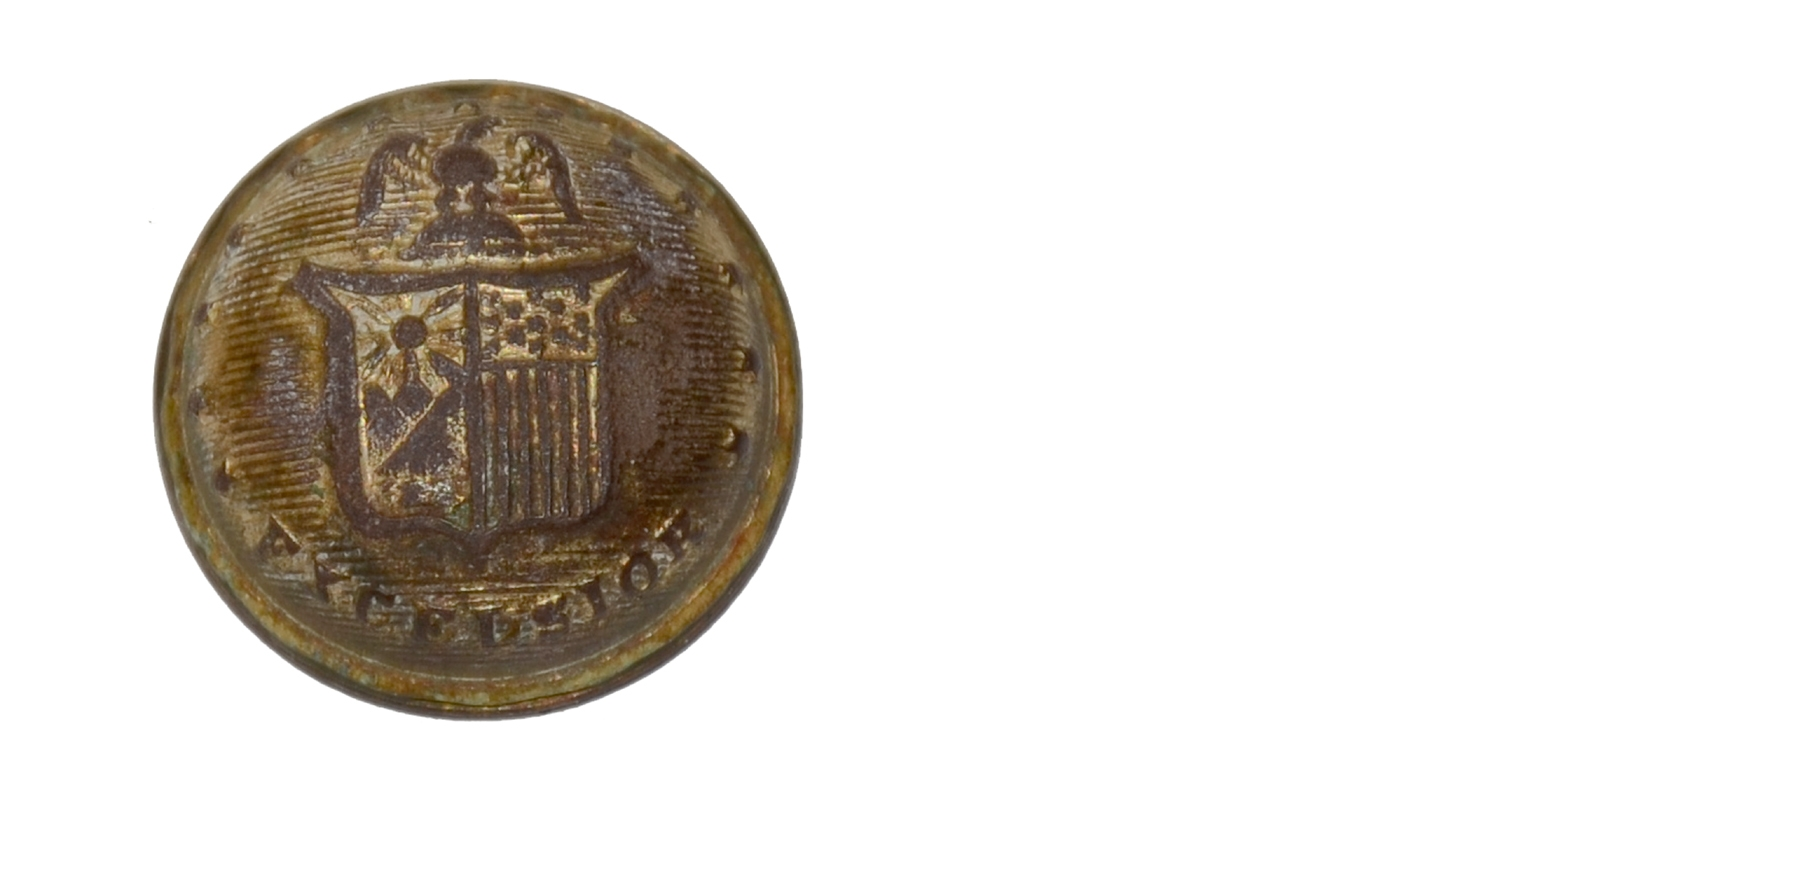 NEW YORK EXCELSIOR STATE JACKET BUTTON FROM GETTYSBURG